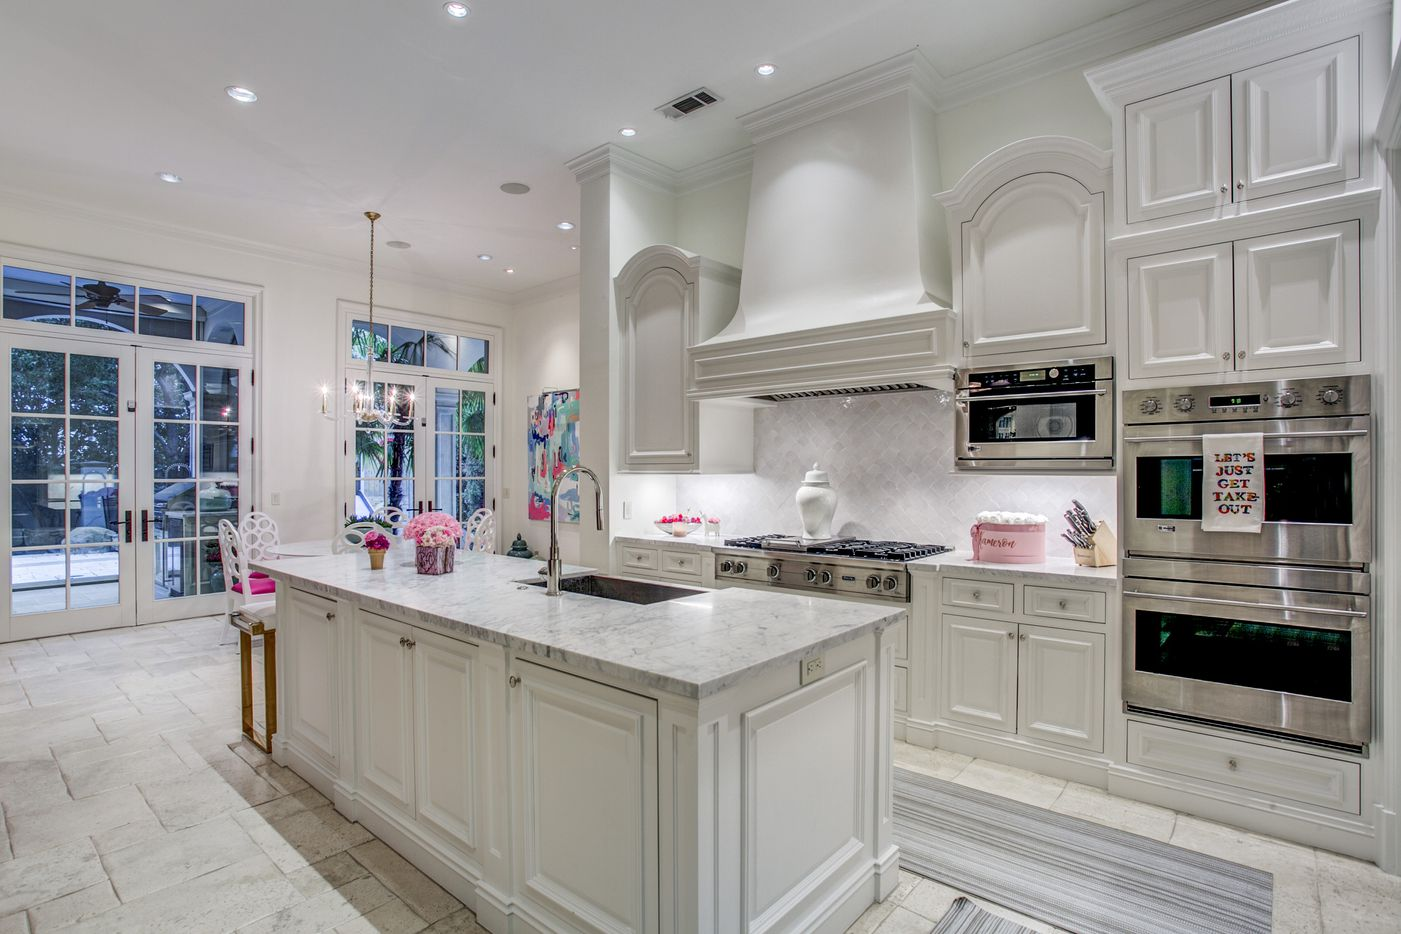 A look at the kitchen of the Dallas home Kameron Westcott is selling.